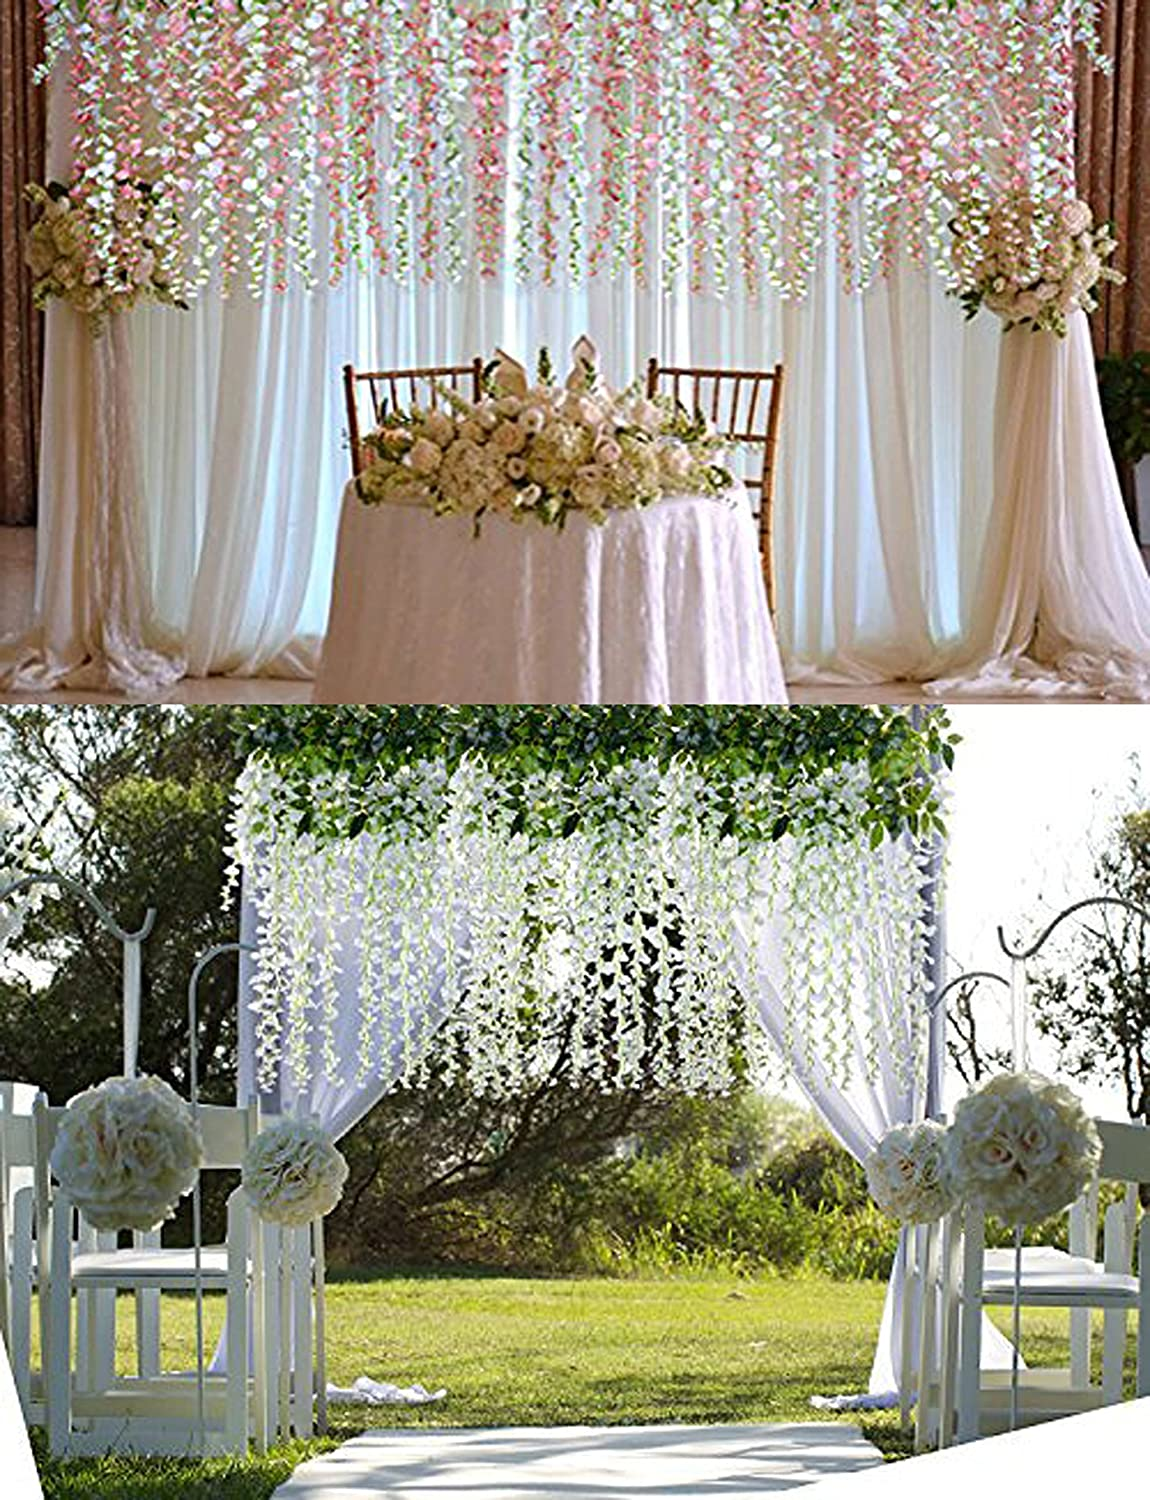 Wisteria Vine Garland Flower Artificial White Fake Hanging